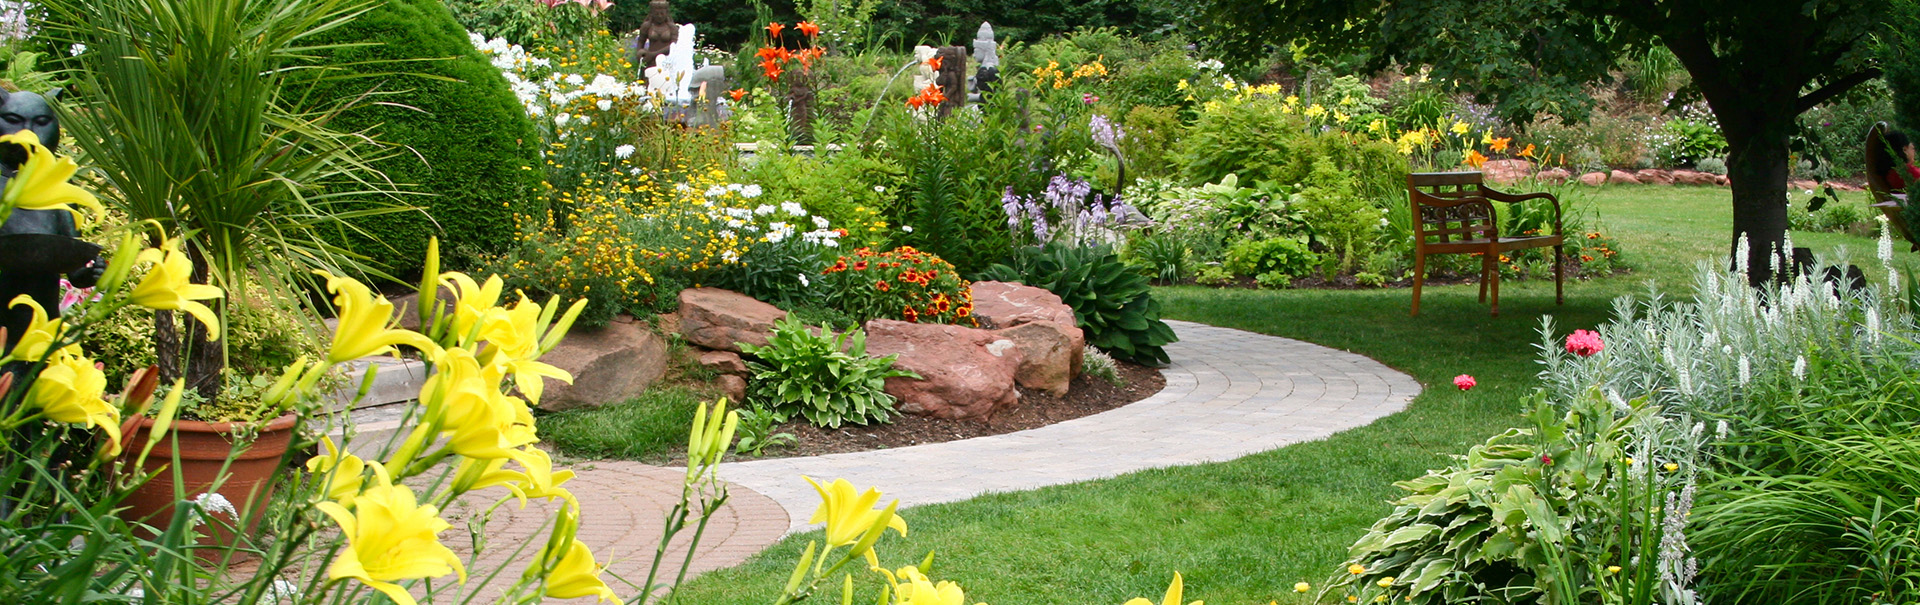 Lawn Mowing Landscaping In Salisbury Maryland Smith S Professional Grounds Maintenance